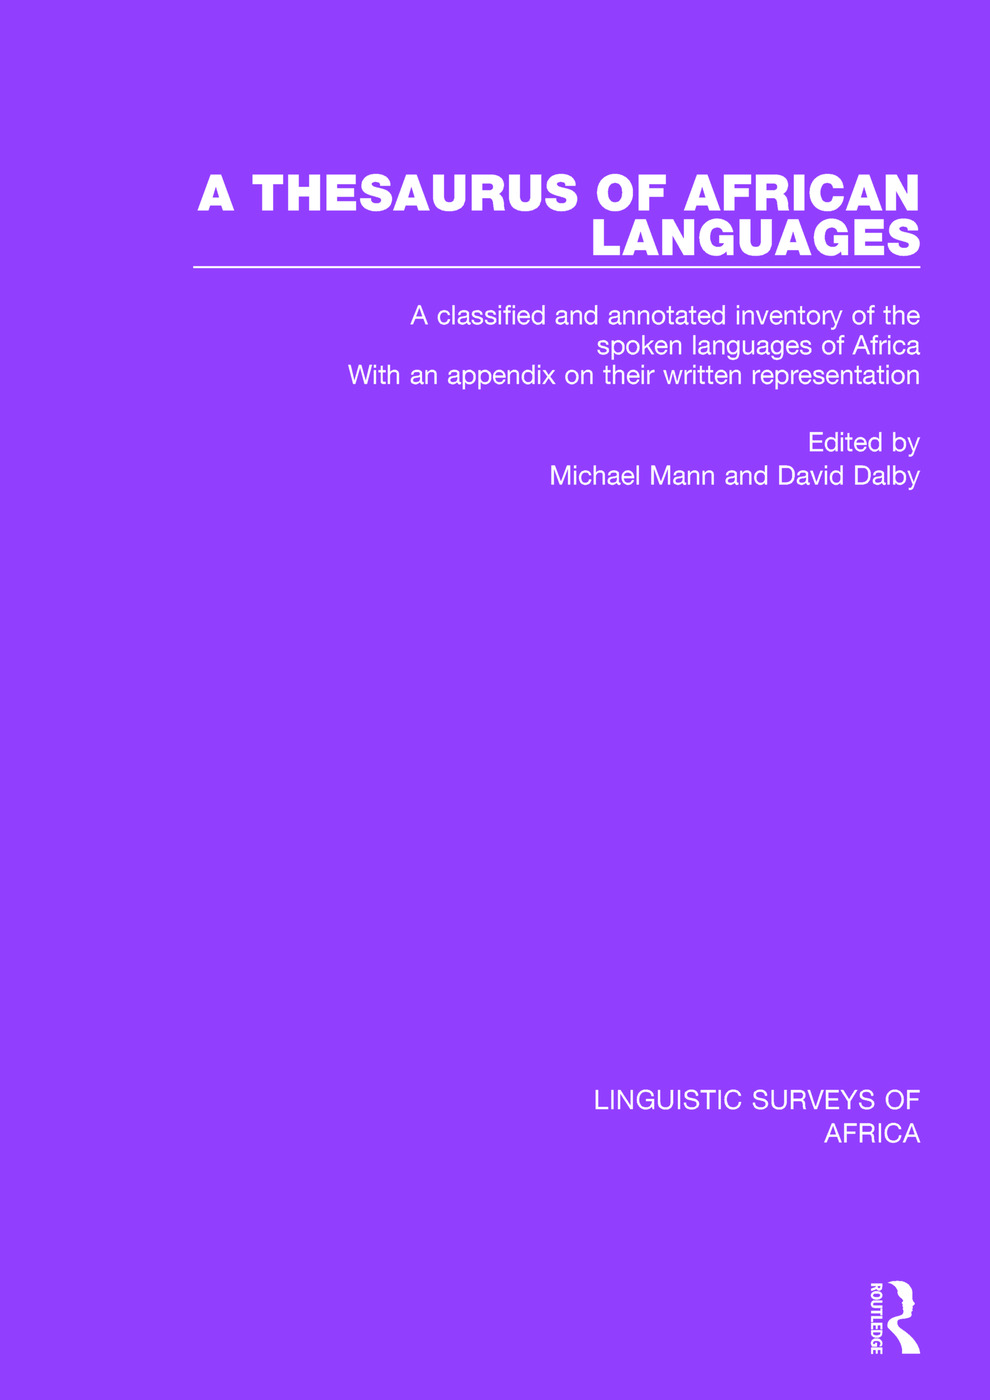 A Thesaurus of African Languages: A Classified and Annotated Inventory of the Spoken Languages of Africa With an Appendix on Their Written Representation book cover